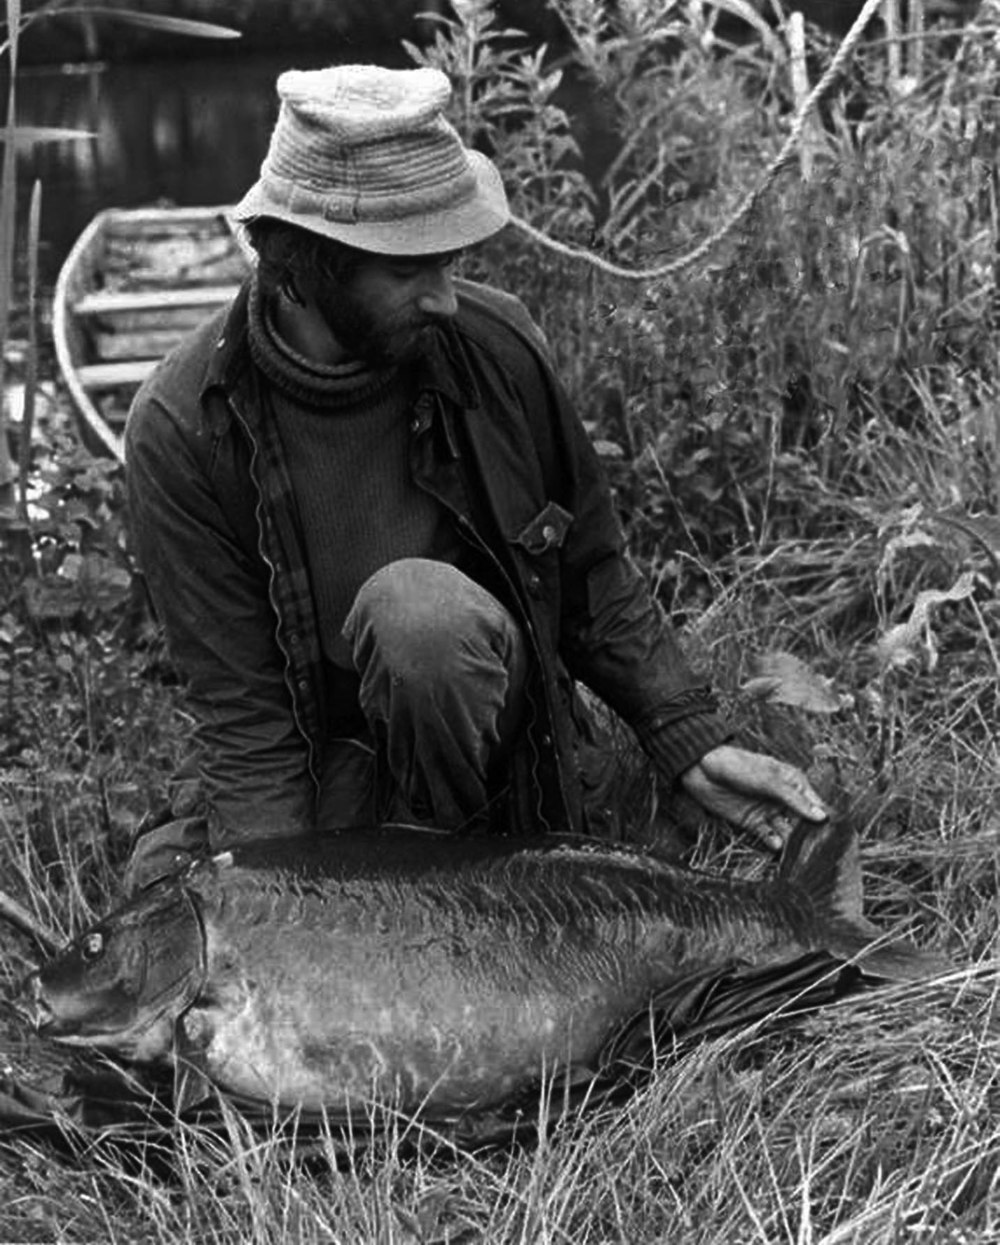 The UK's first 50lb carp - caught by Chris Yates on 16th June 1980. After the weigh scales were adjusted a true weight of 51½lb was recorded.